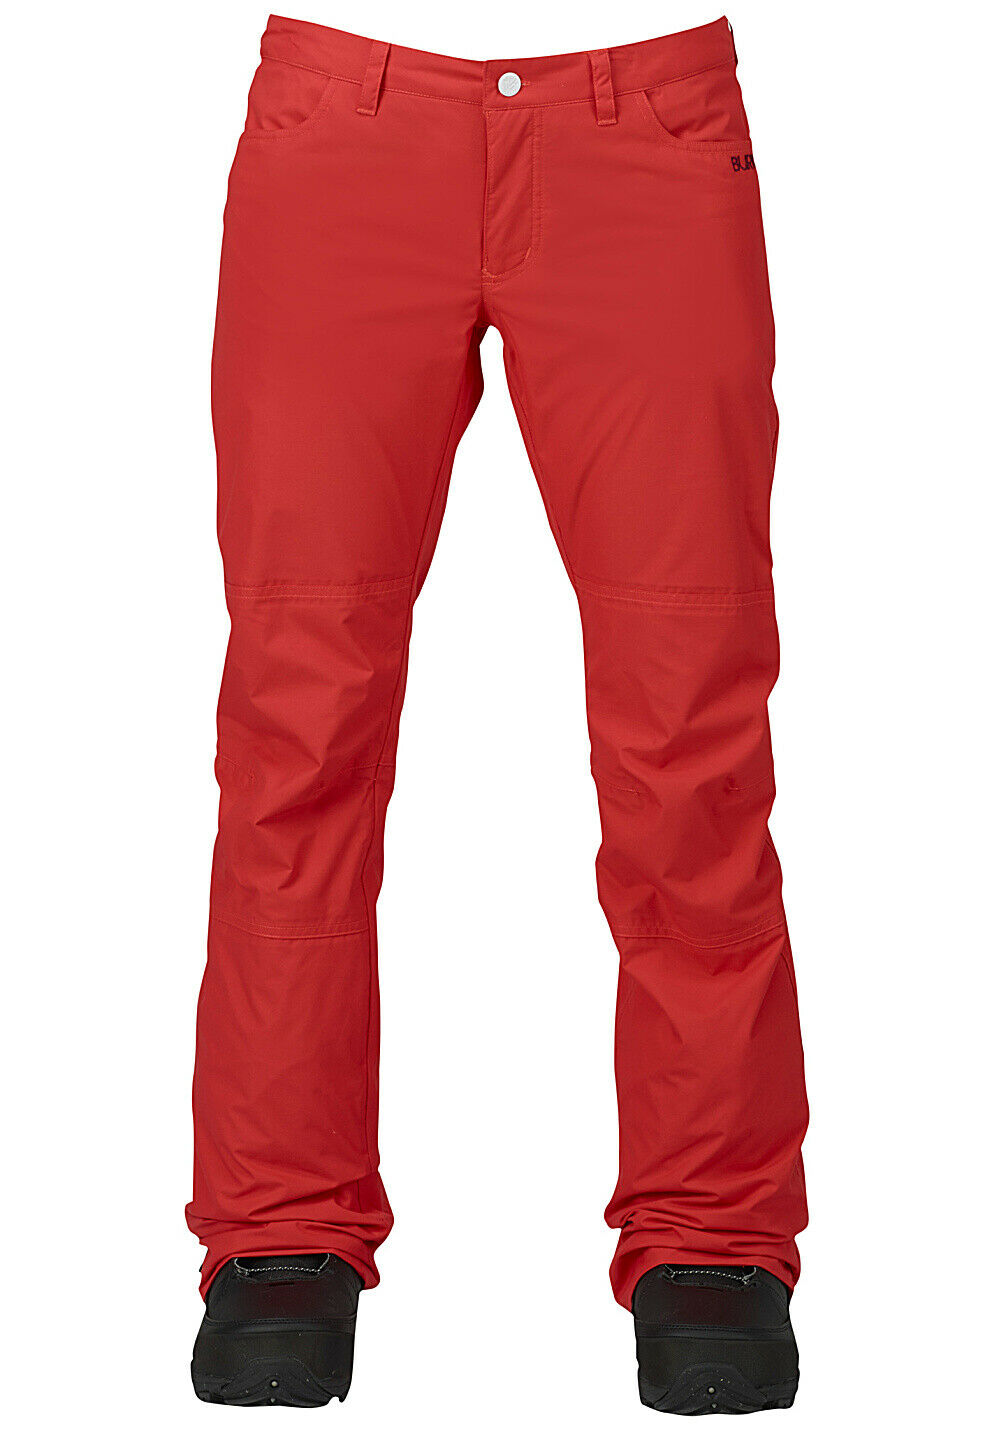 Burton Women's Ladies On Fleek Snowboard Ski Winter Pants Trousers Coral M